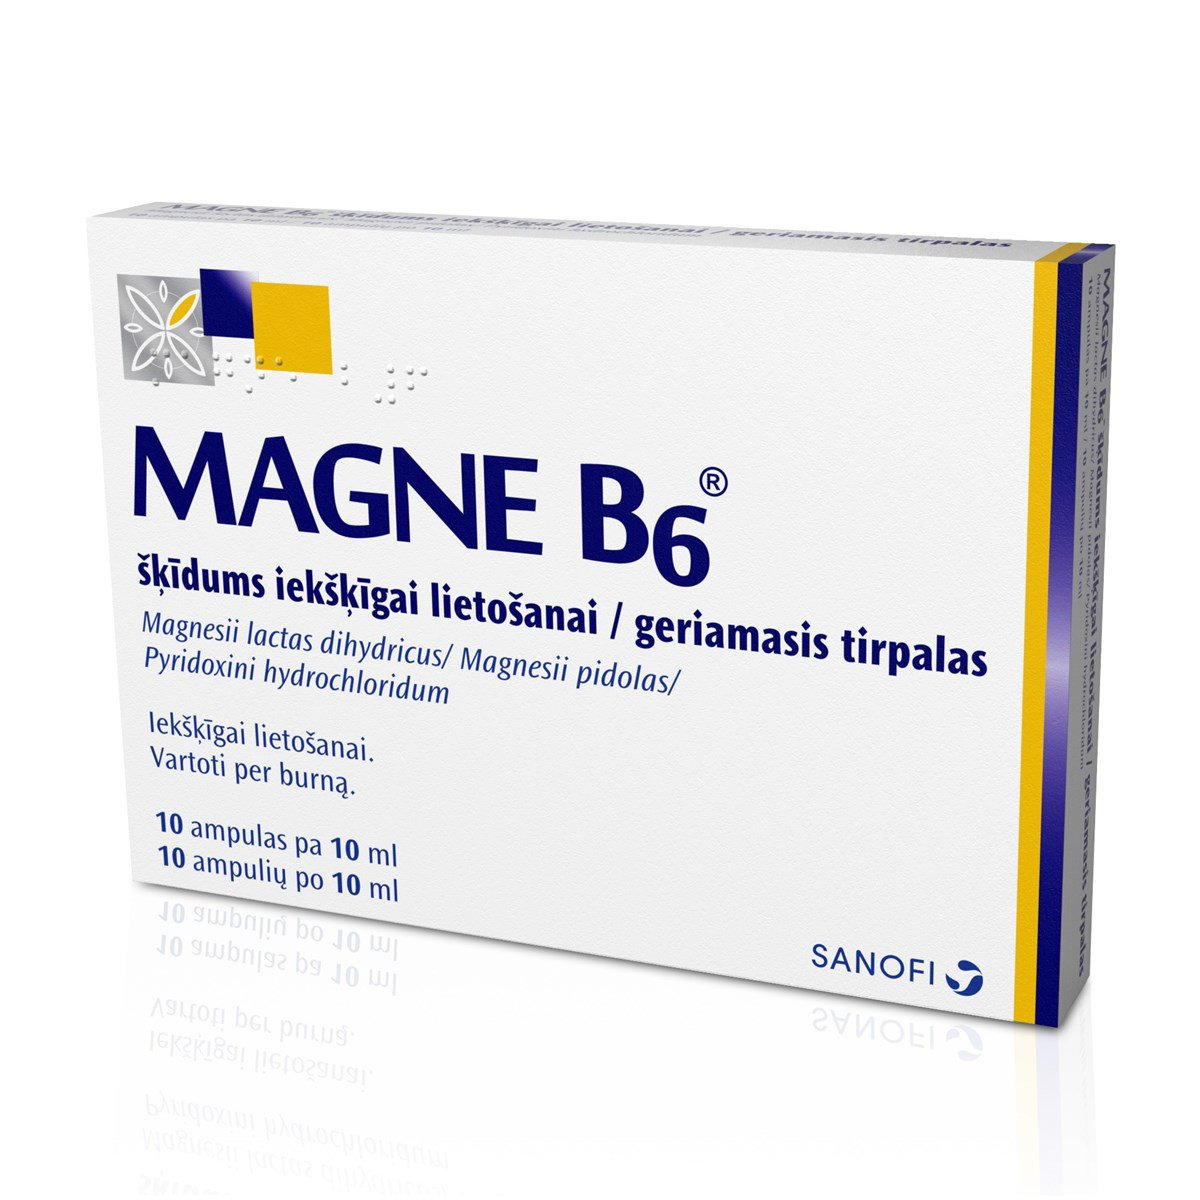 Magne B6 Solution in Ampules 10x10ml